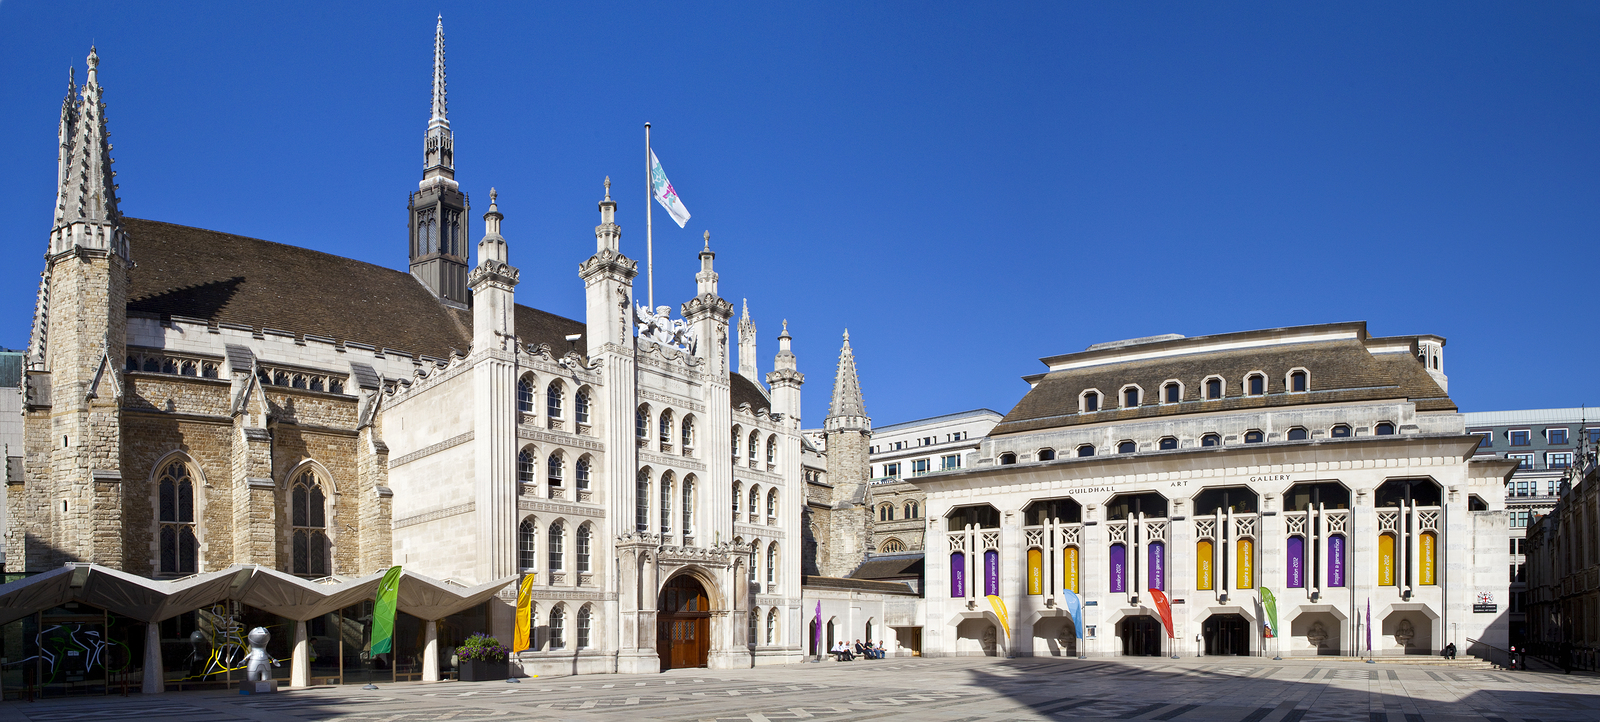 bigstock-London-Guildhall-And-Guildhall-36879619.jpg